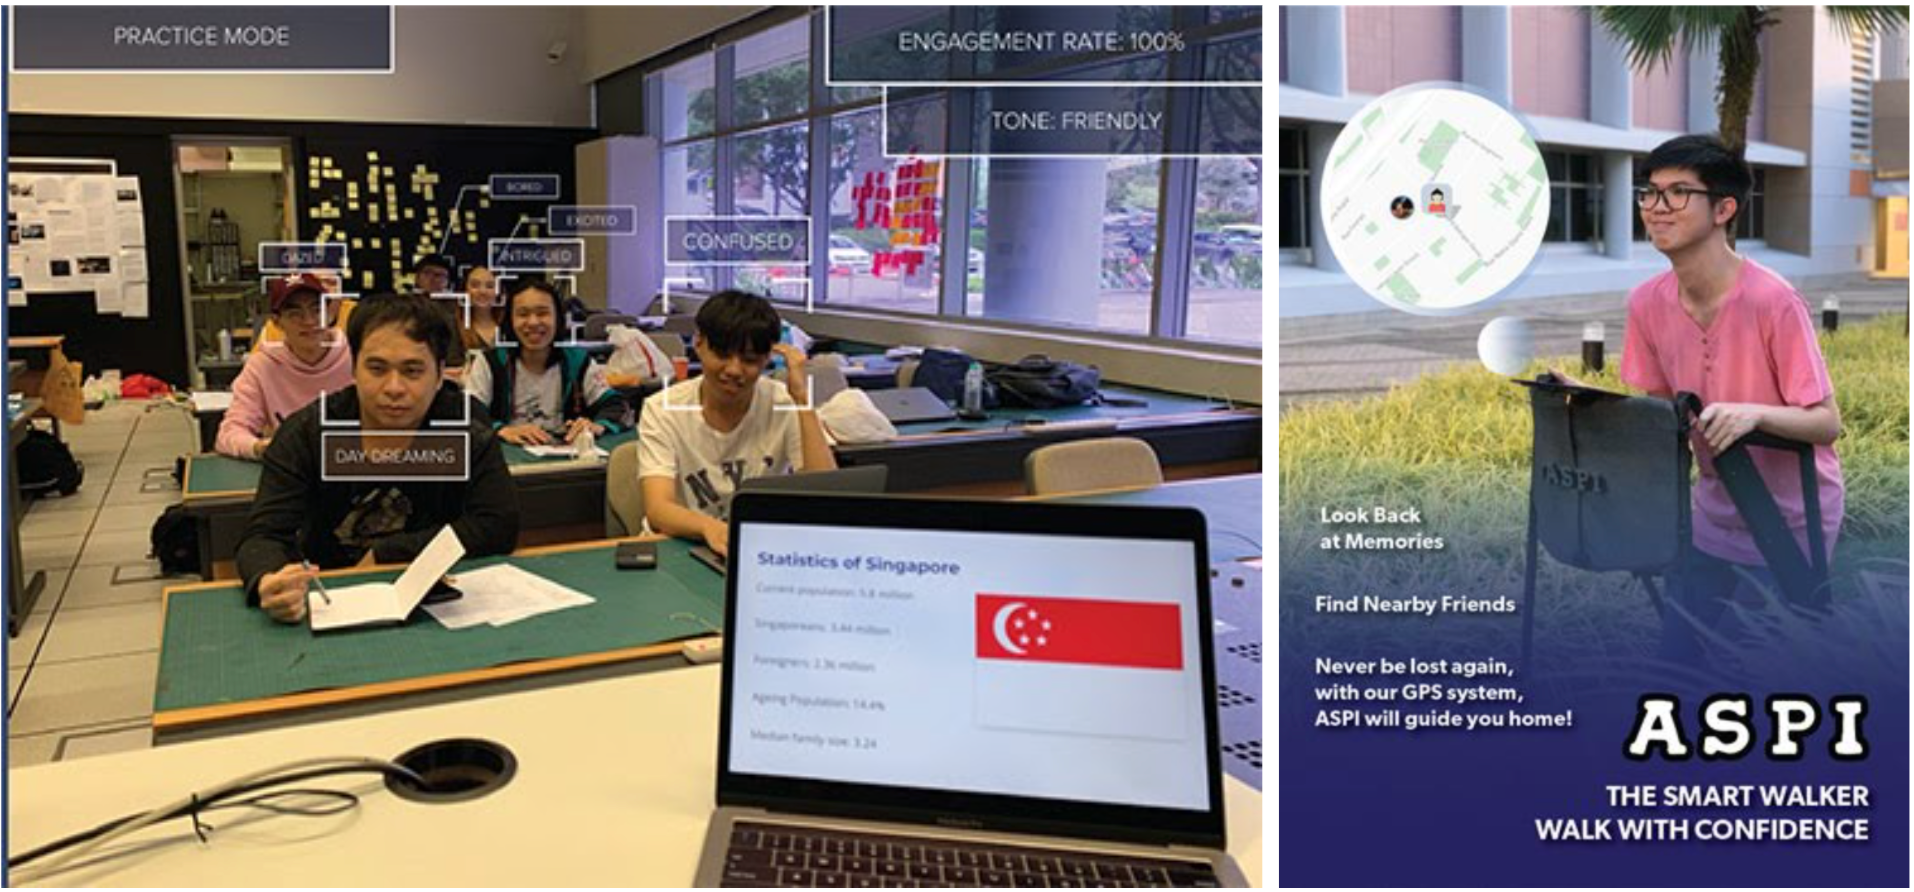 """Two examples of student projects. One shows a classroom of students from the perspective of someone presenting, with an AI overlay that shows each student's state, such as confused or daydreaming, and overall engagement rate and tone. The other is a mock ad with a photo of a young man using a walker and a map overlay that shows his location on a map. It says """"Look back at memories, find nearby friends, never get lost again with our GPS system, ASPI will guide you home. The smart walker."""""""